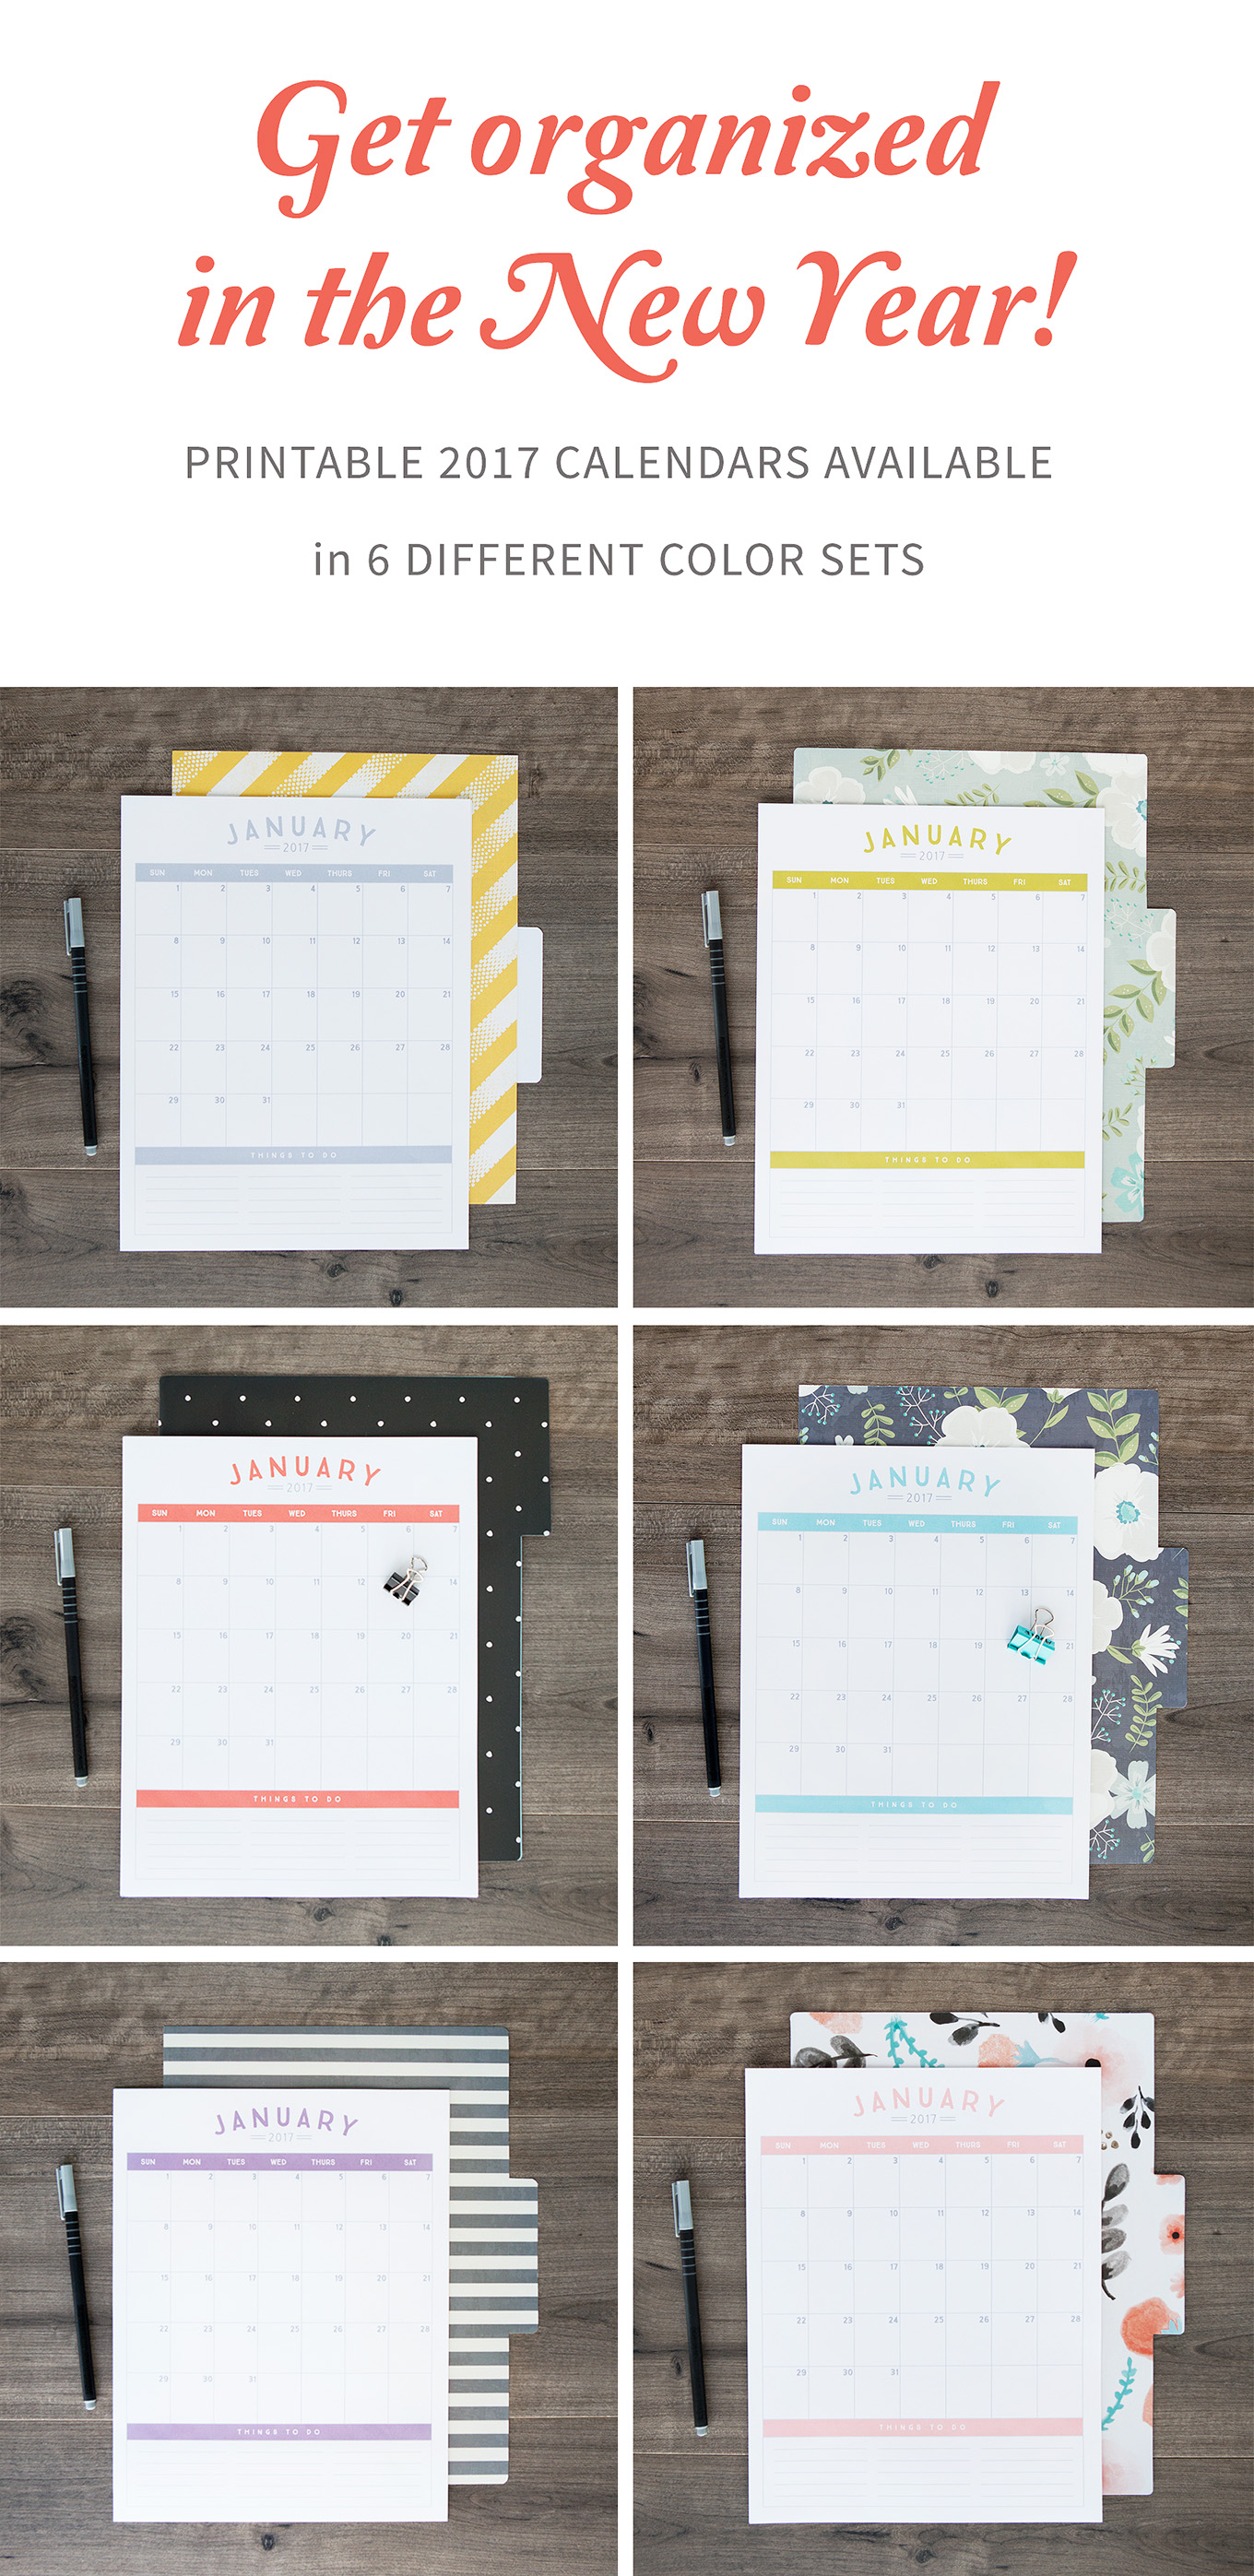 2017 Printable Calendars – available in 6 gorgeous colors!